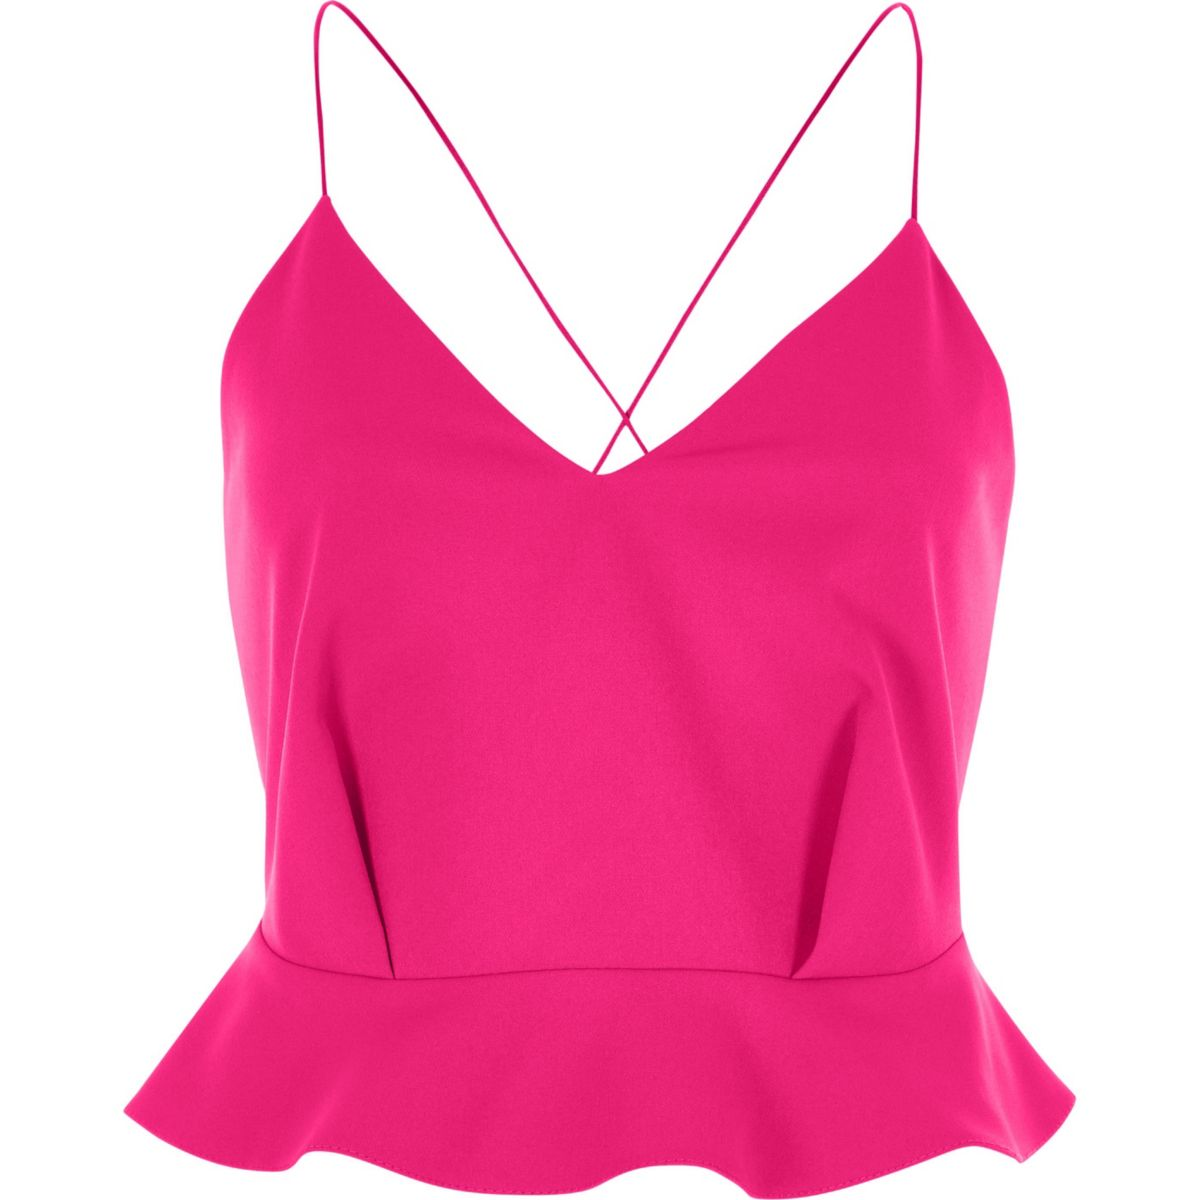 Pink peplum cross back cropped cami top